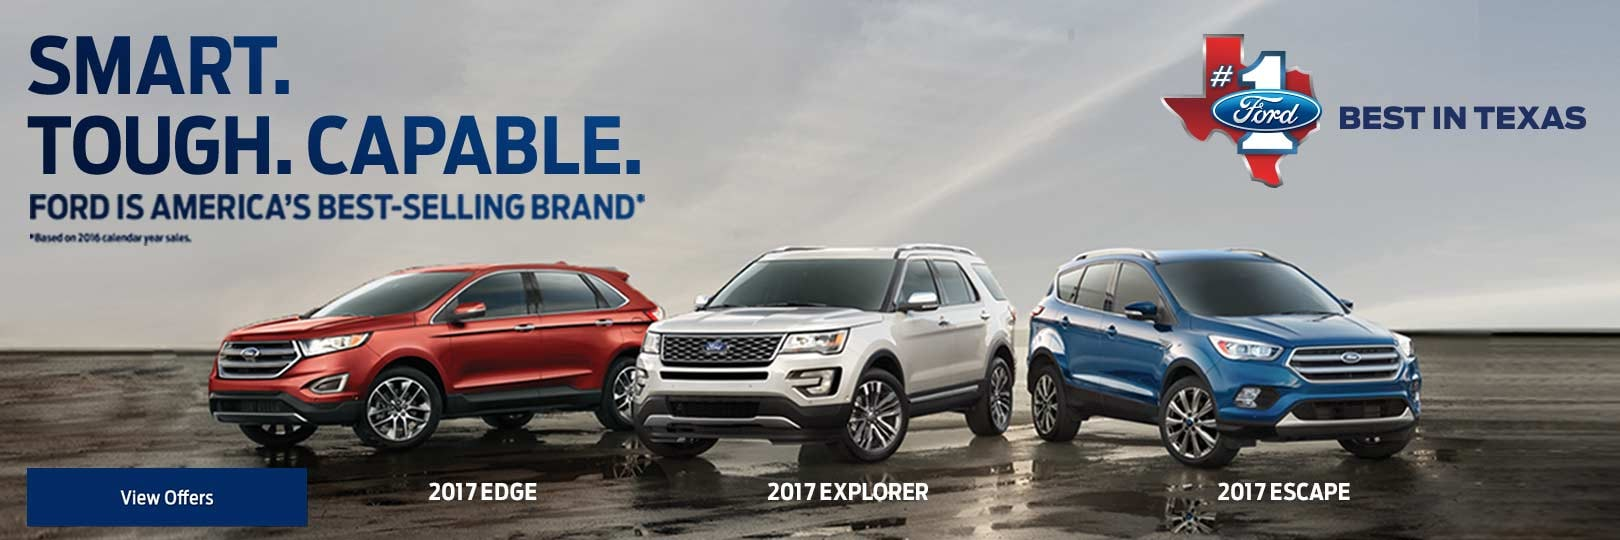 Ford Dealership Midland Tx >> Rogers Ford Sales Inc. | Ford Dealership in Midland TX